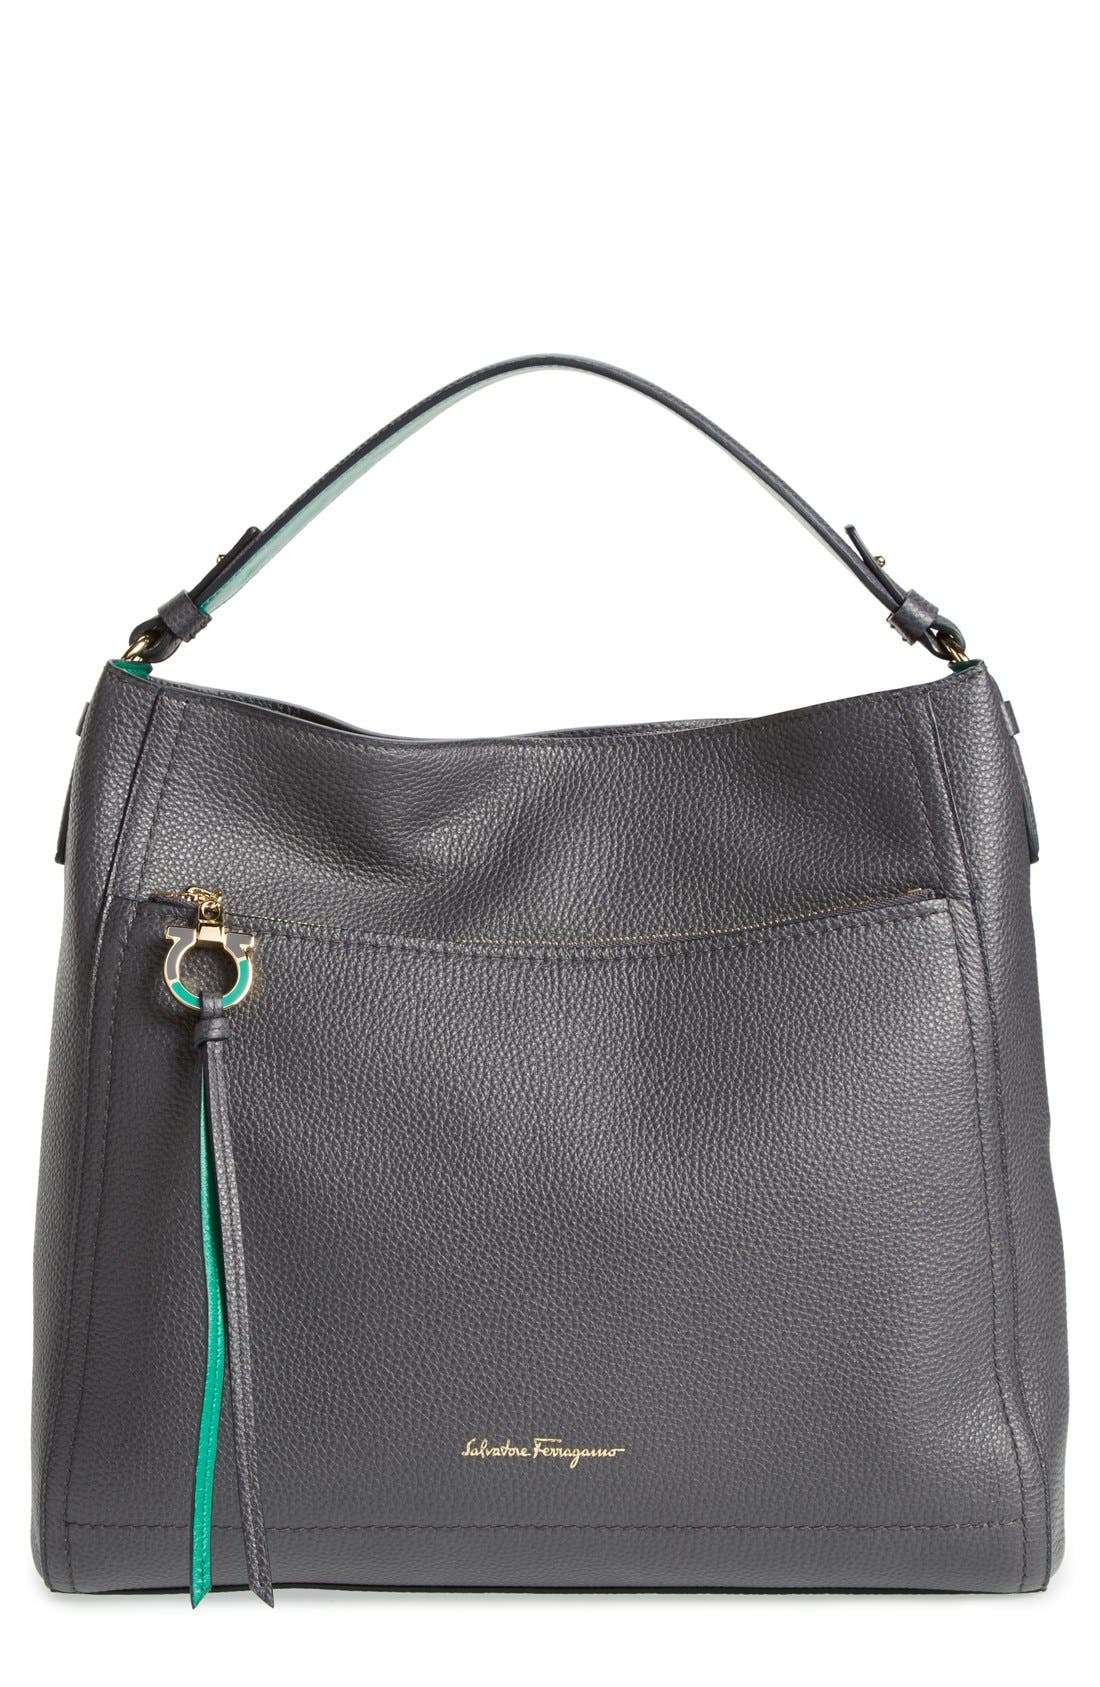 SALVATORE FERRAGAMO 'Ally' Hobo, Main, color, 020